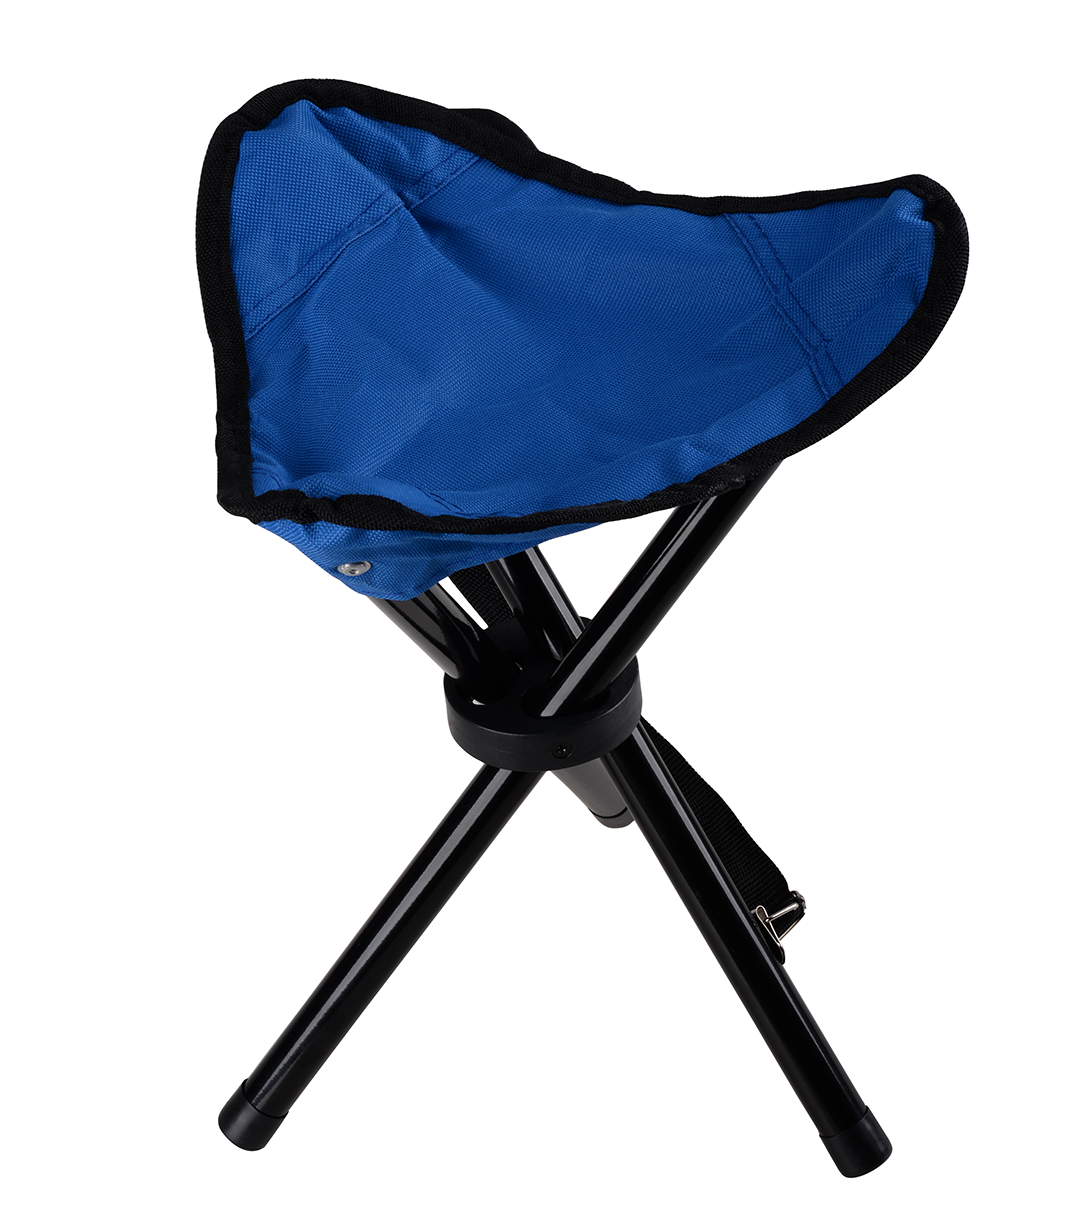 folding chair australia wood high for baby outdoor portable tripod blue ukeyy